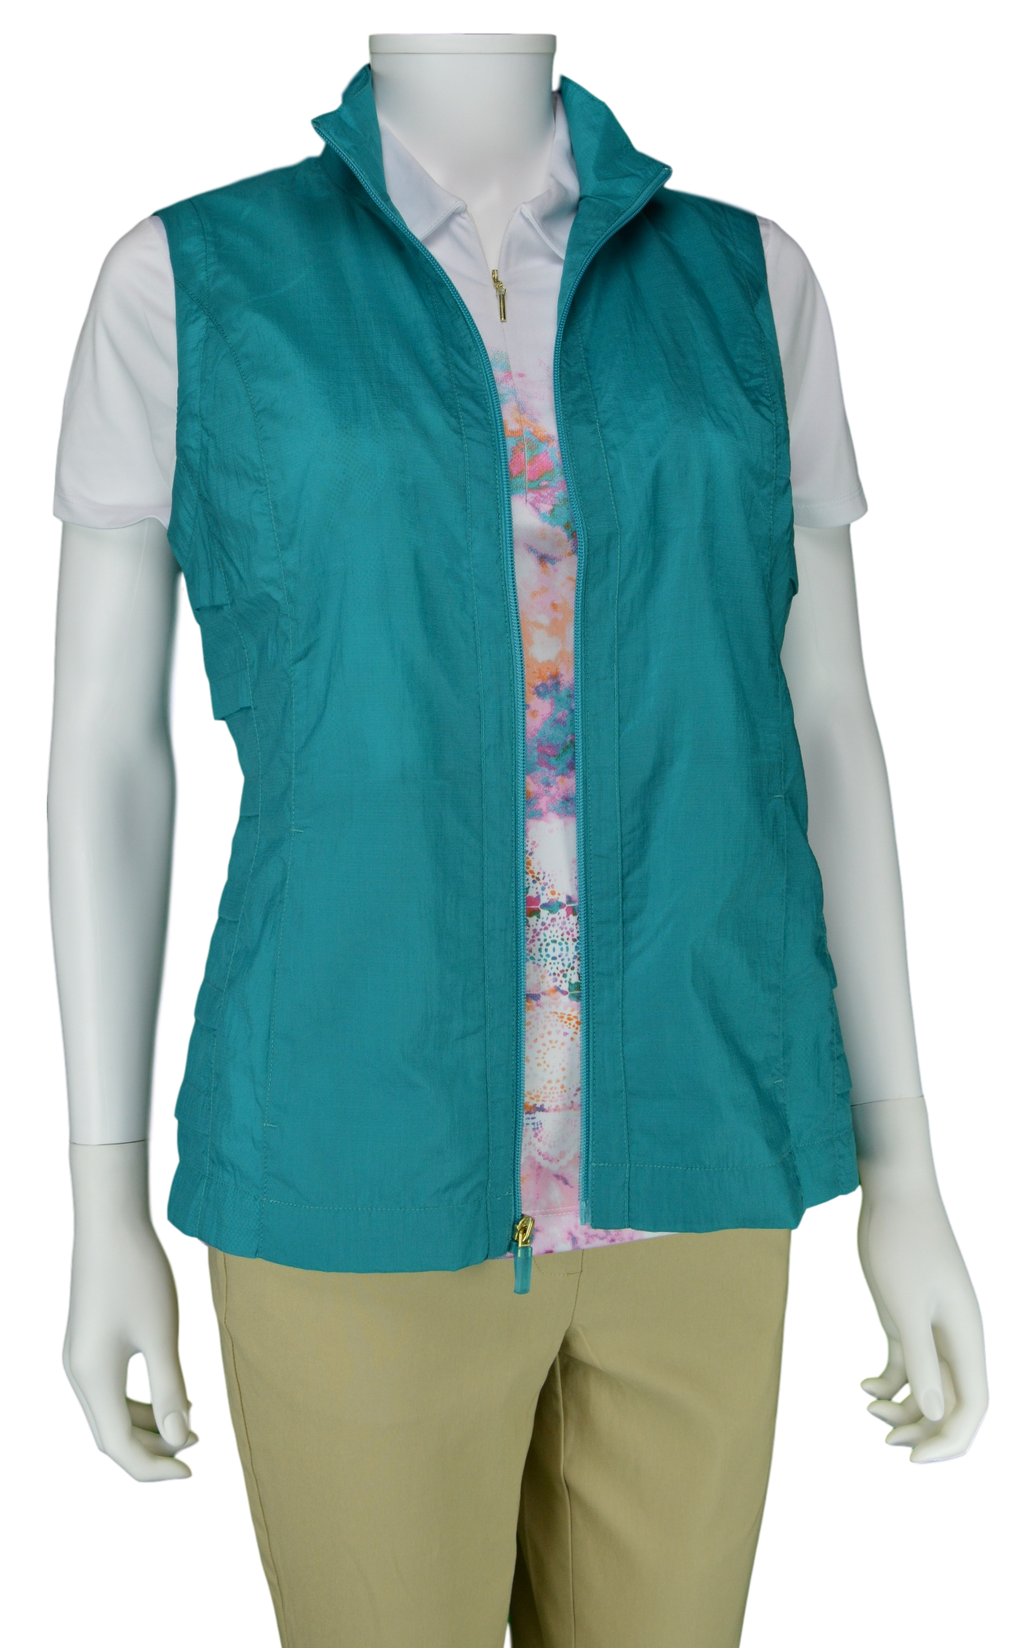 EP Pro Cassis Water Resistant Vest in Aqua Crush